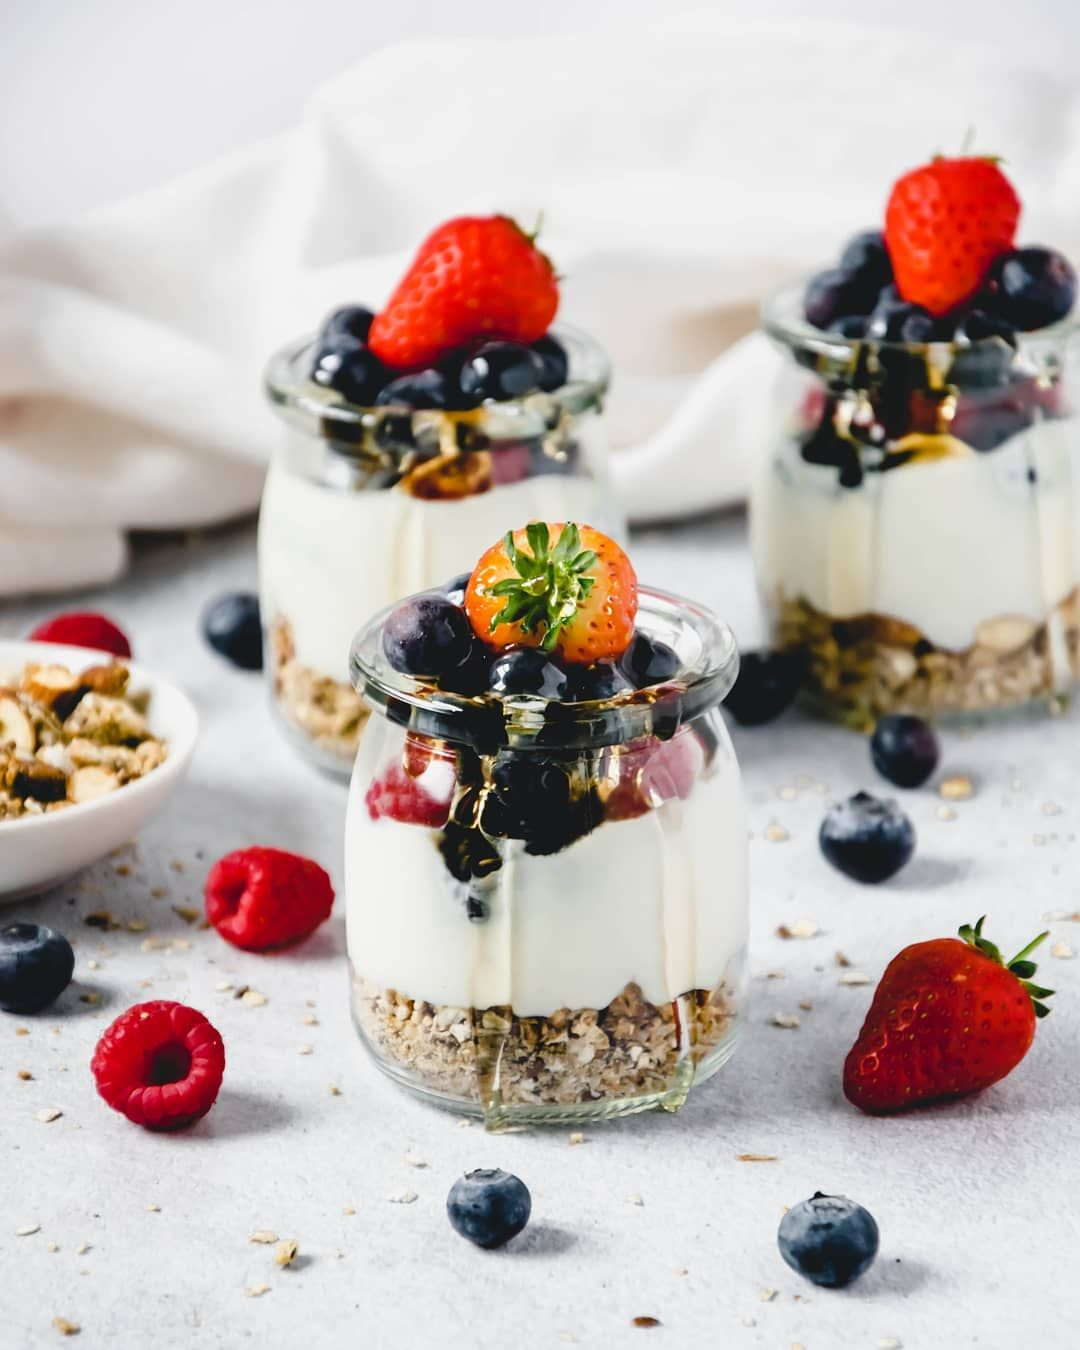 So obsessed with granola for breakfast lately so I made this healthy dessert with yogurt and fruit 🍓🍓🍓